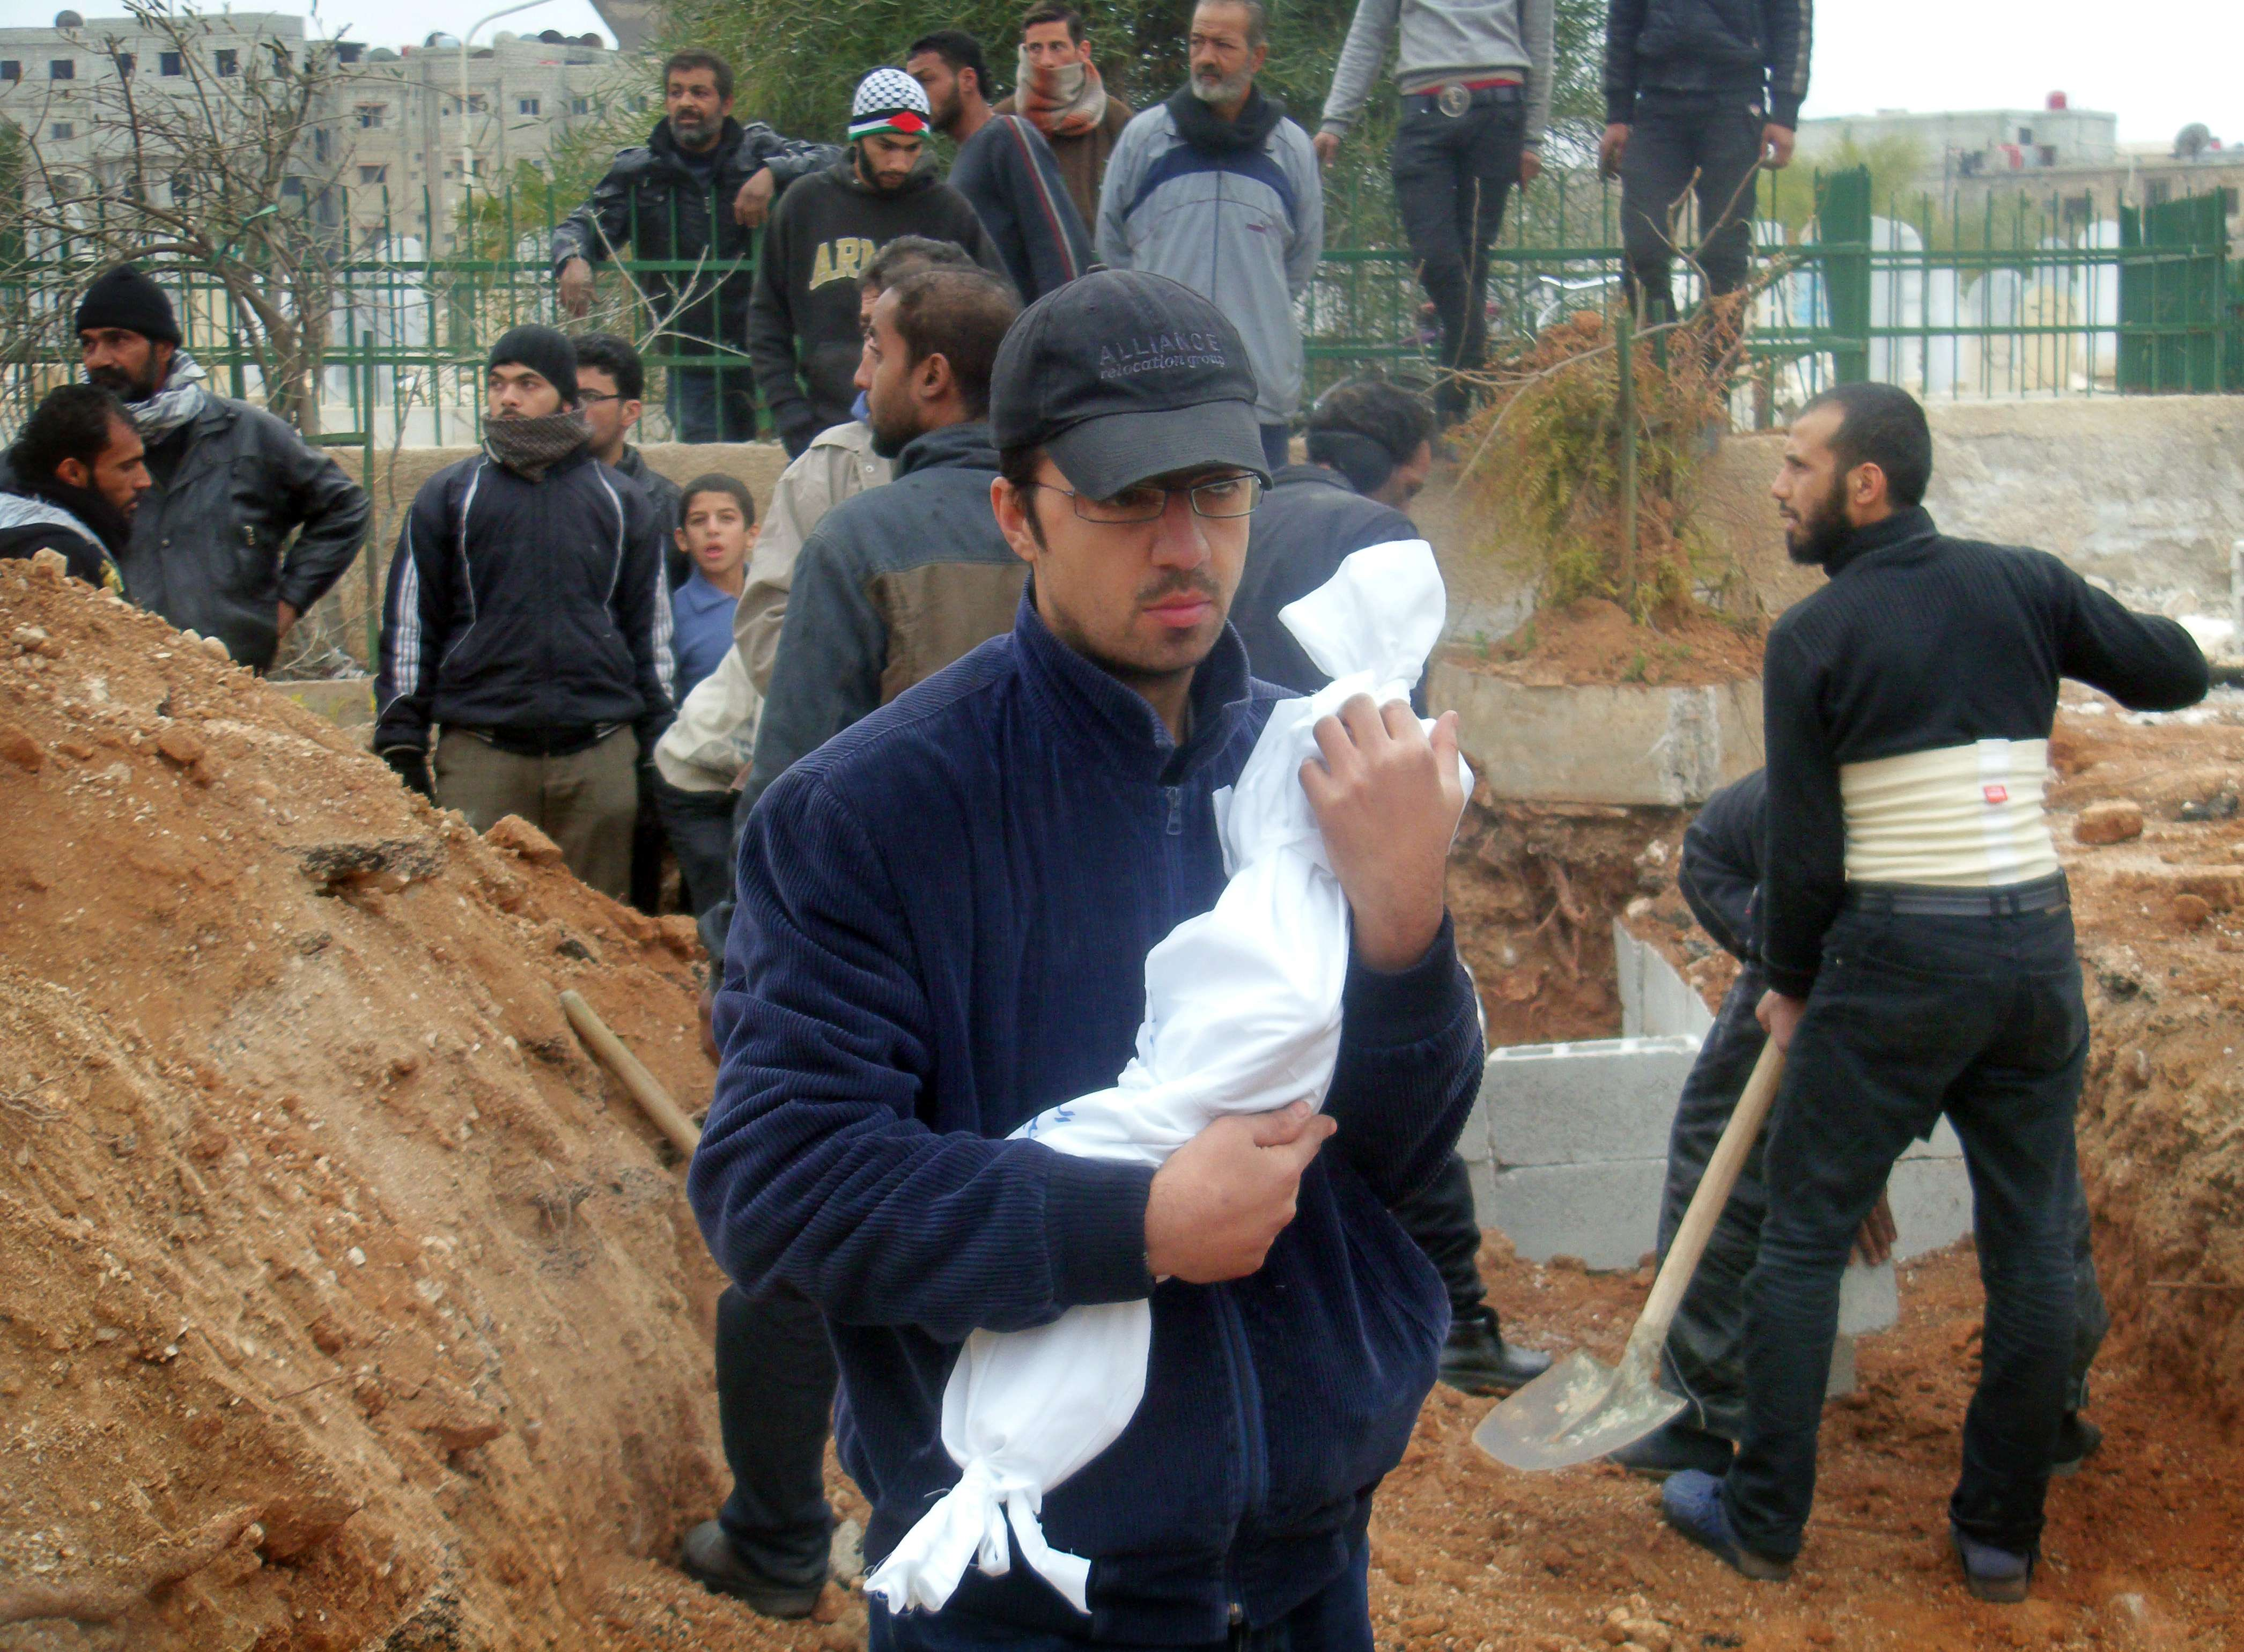 A man holds the corpse of one-year old baby Adbul Jalil Mohamed Hamis wrapped in shrouds, who reportedly died of hunger in the besieged Yarmuk Palestinian refugee camp in southern Damascus during a funeral ceremony on January 27, 2014. The previous week the Syrian Observatory for Human Rights reported that 63 people, including women and children, died due to starvation and a lack of medical supplies in the camp of Yarmuk.  (AFP PHOTO / STR / LENS OF A YOUNG DIMASHQI)